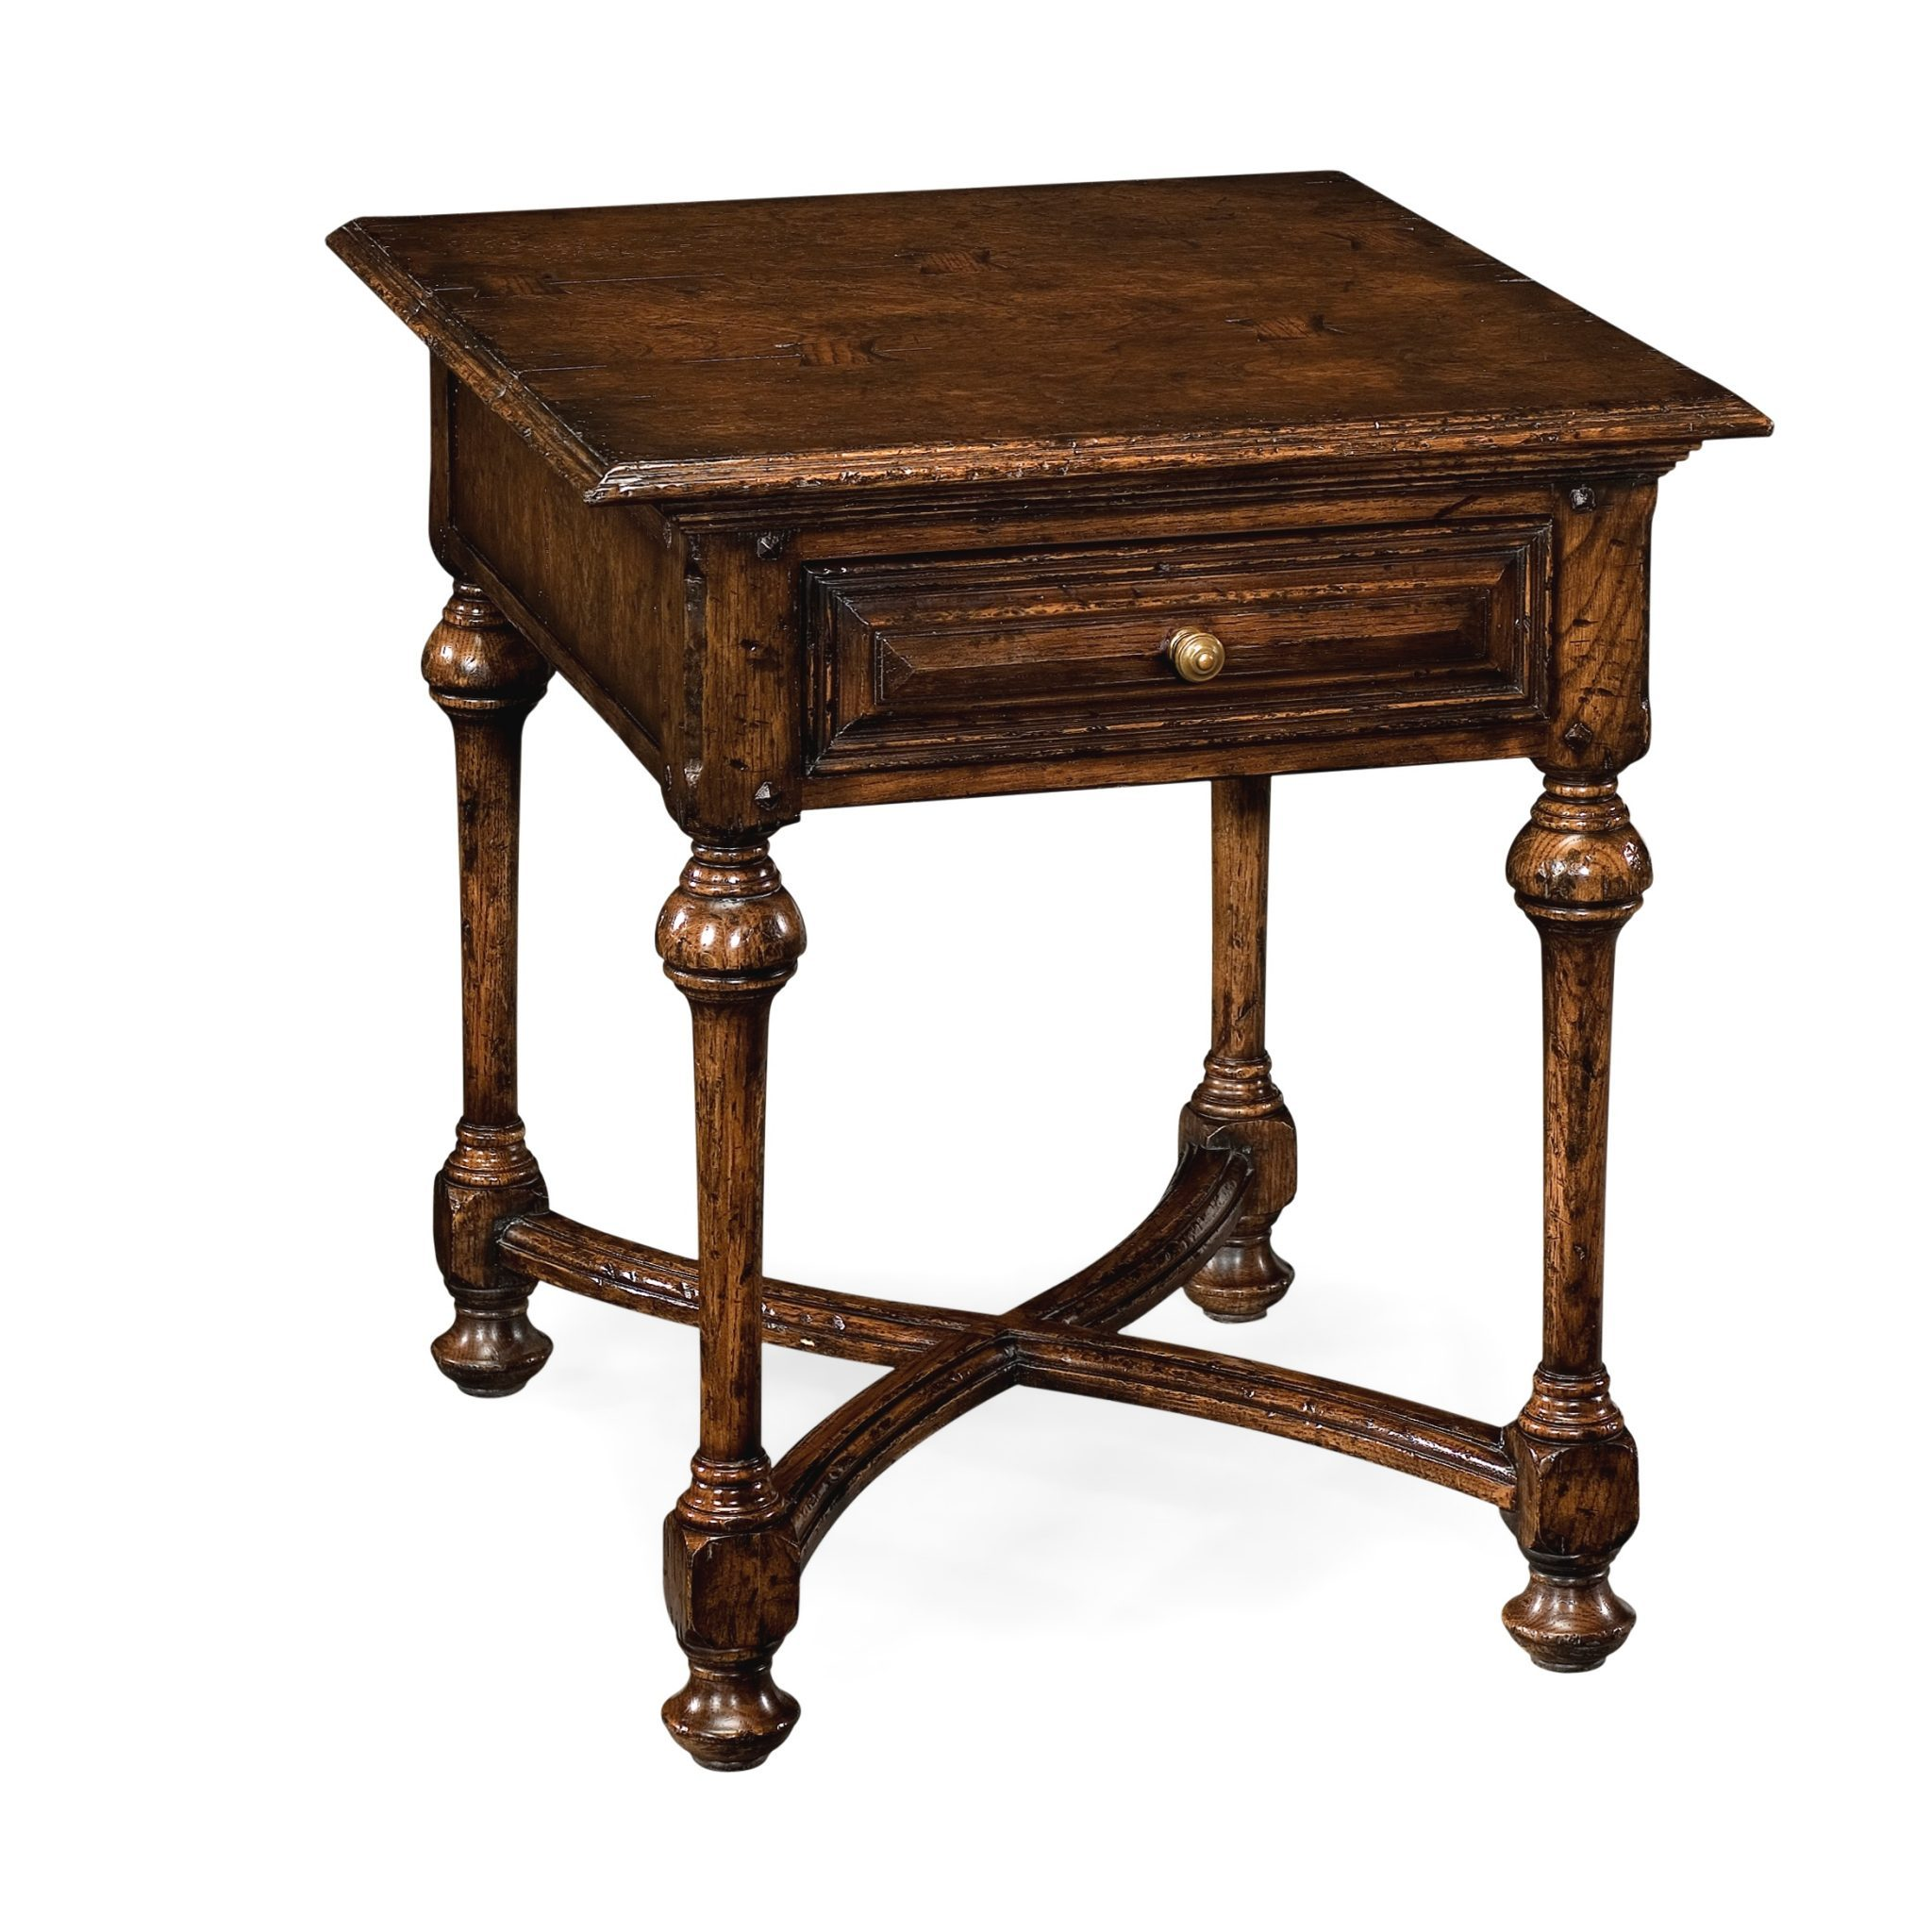 Reproduction English Oak End Table English Antiques Caledonian